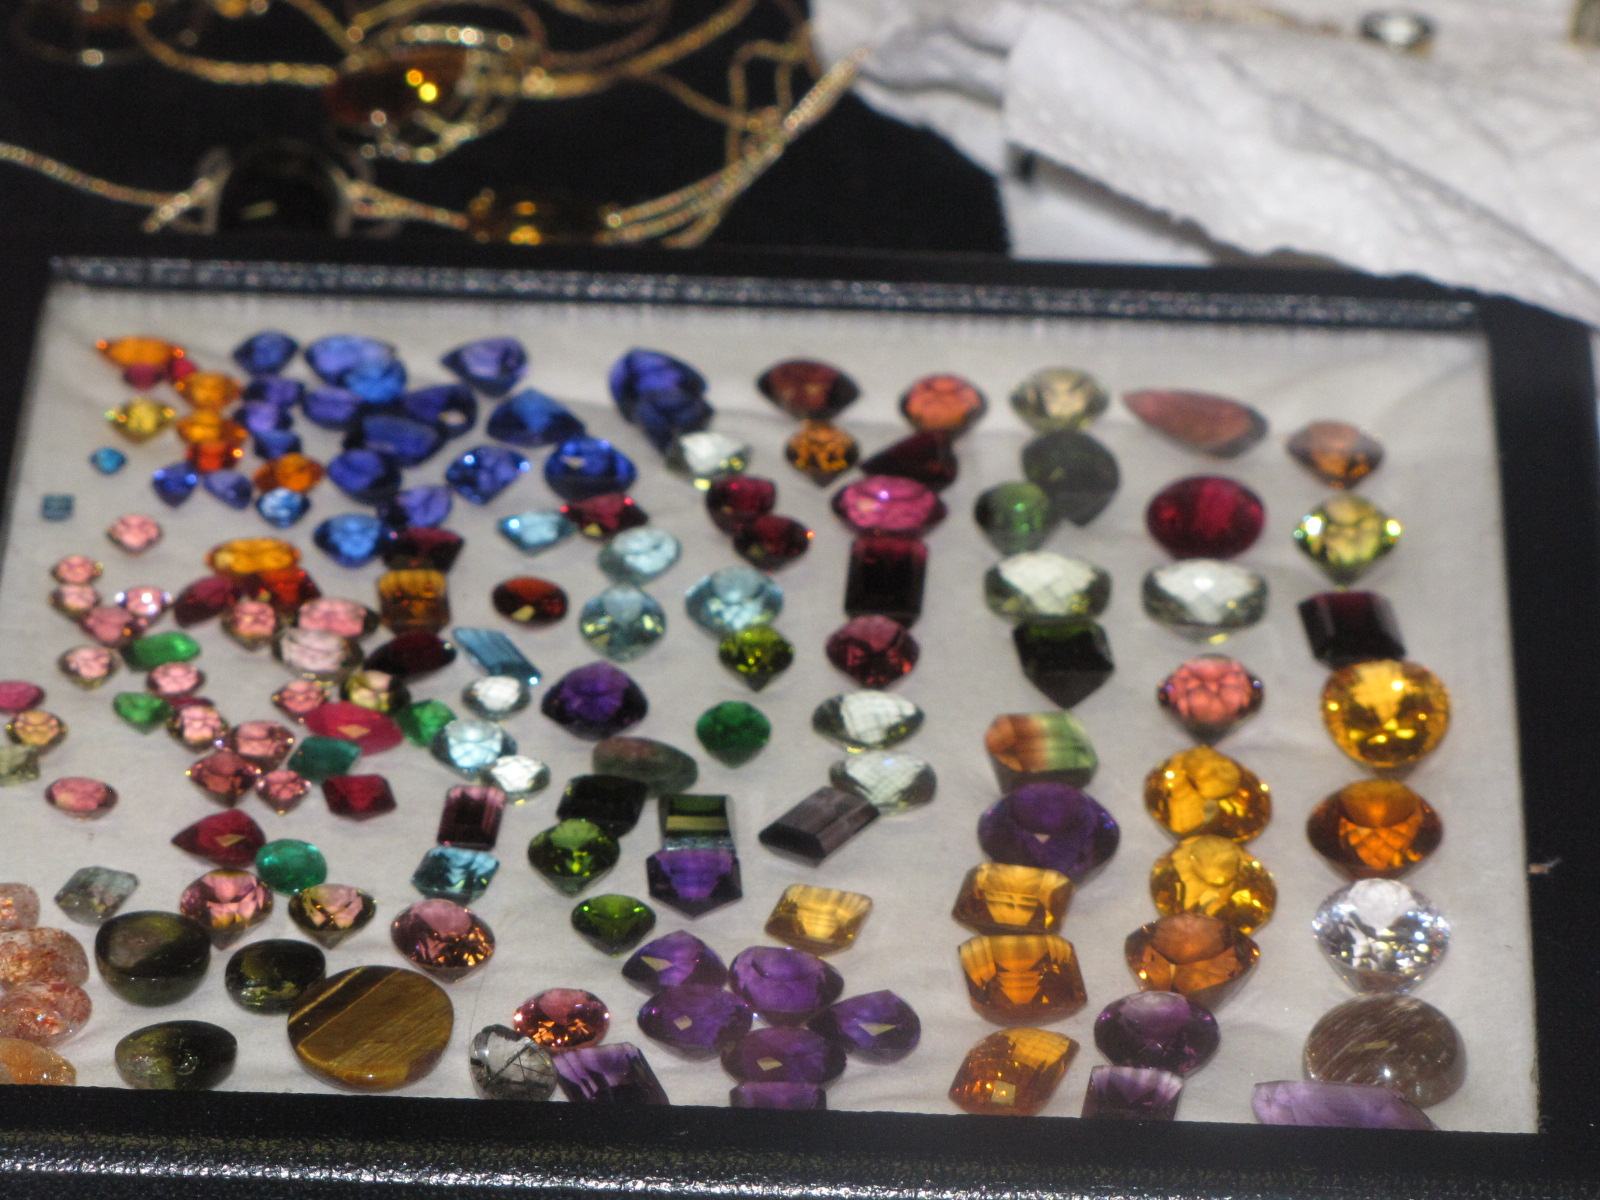 The Globe Newspaper Zambian Gemstone Company Showcases